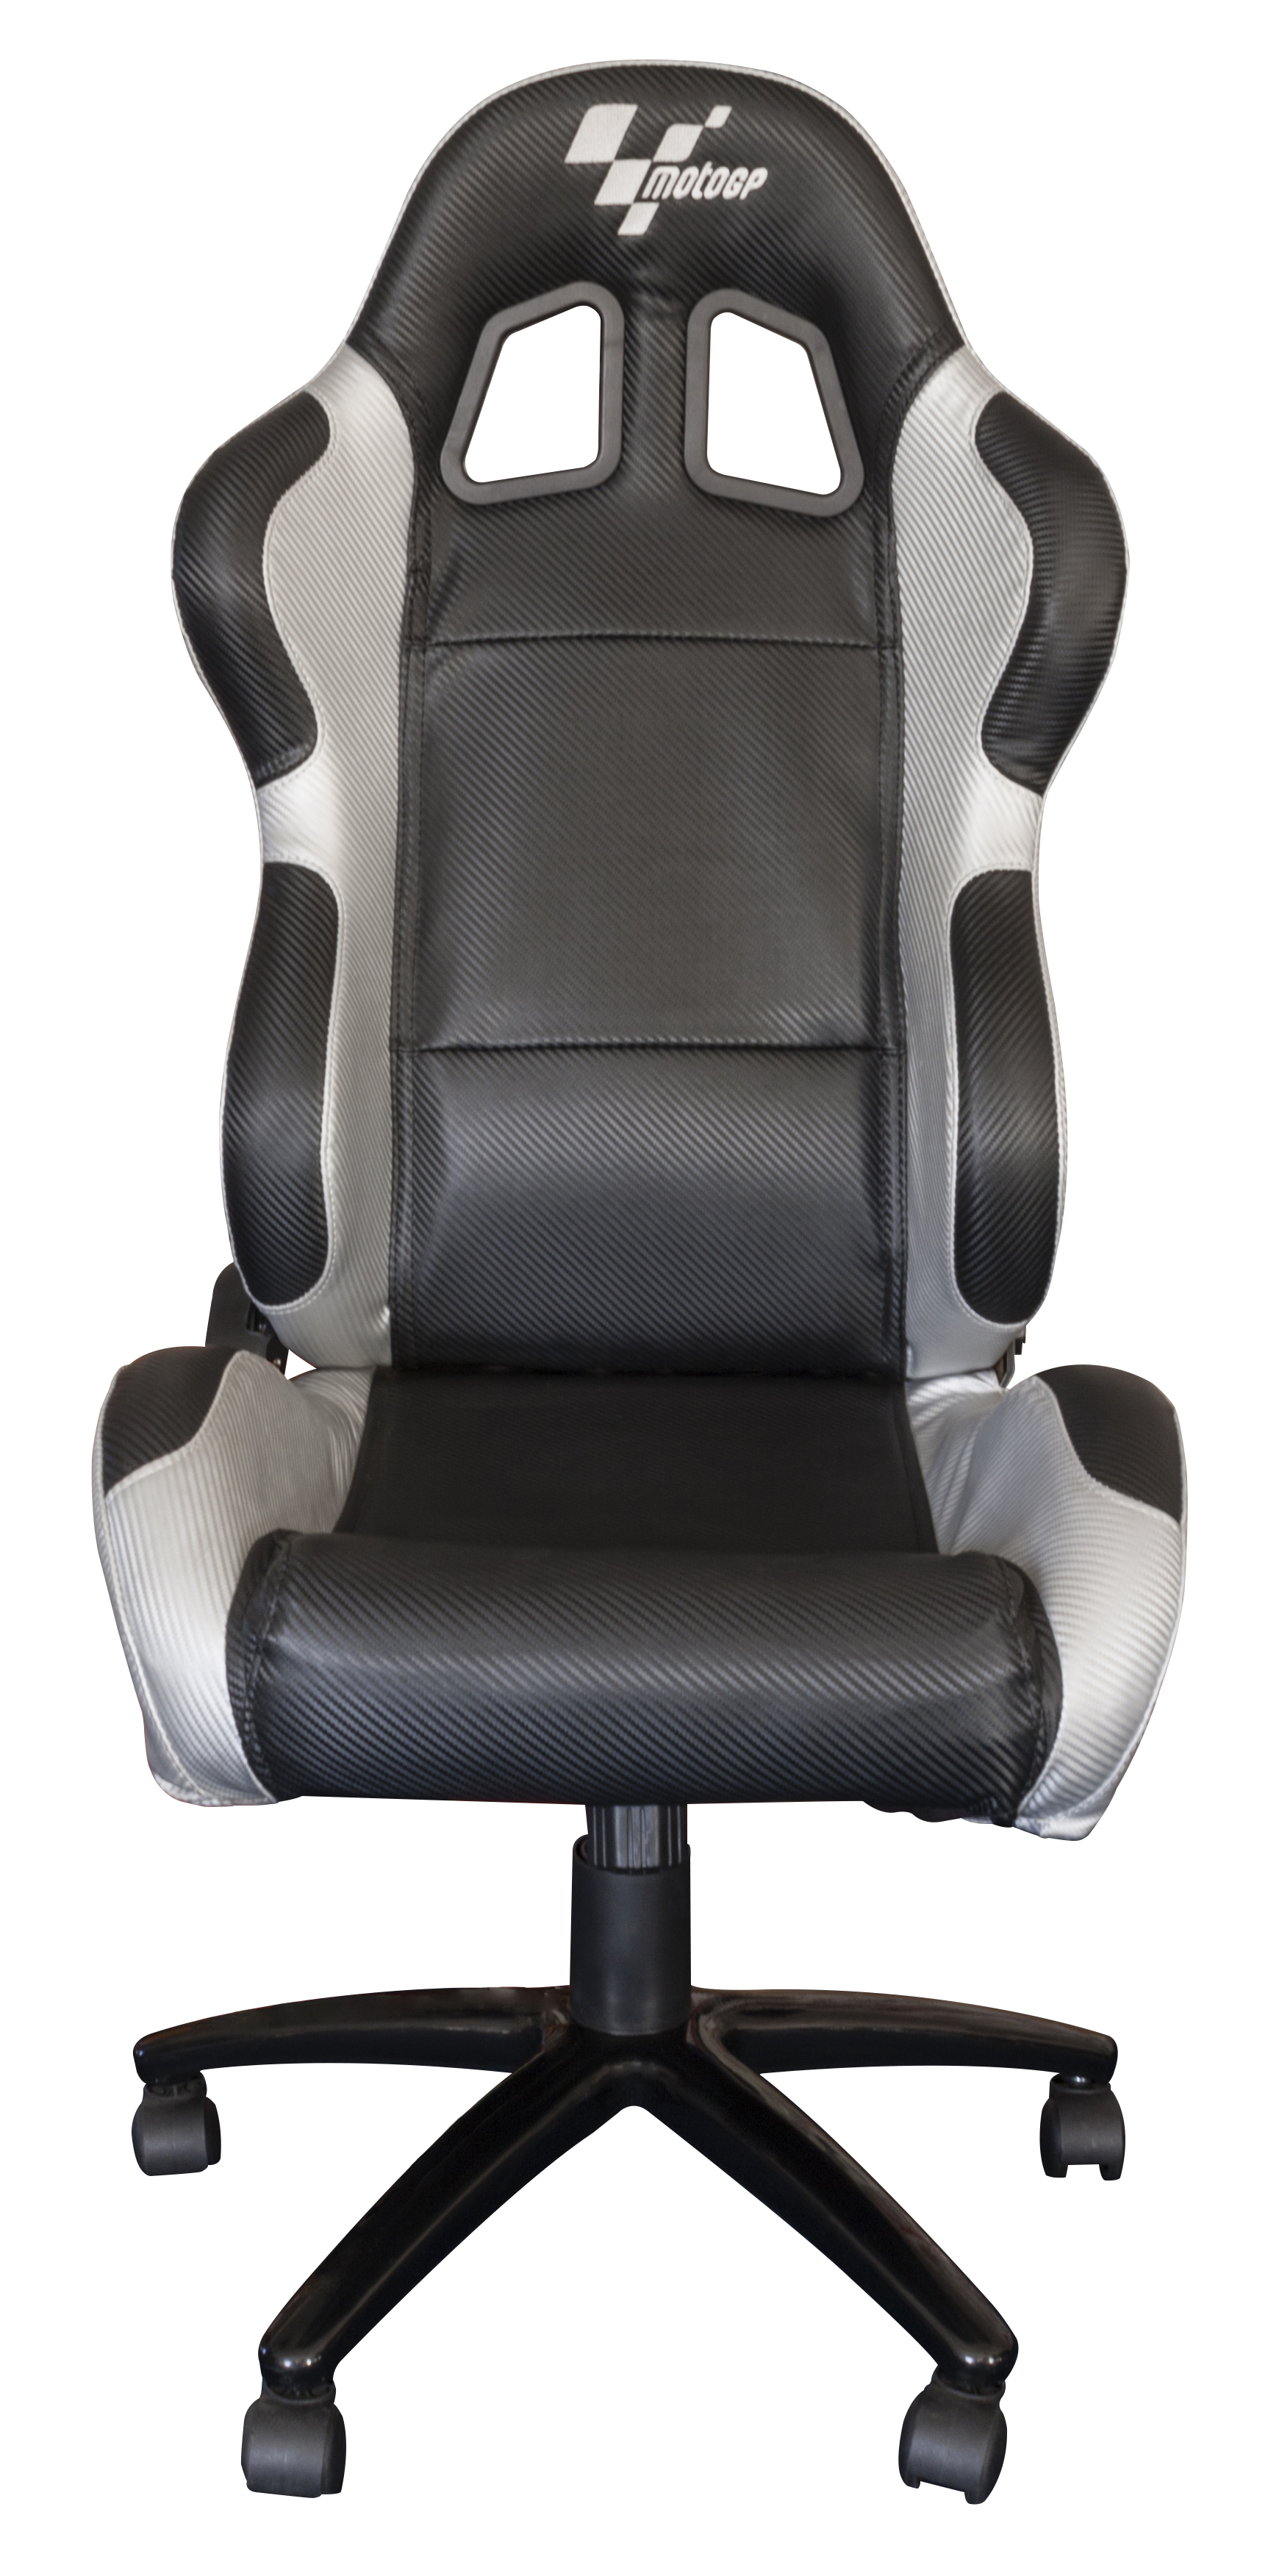 Motogp Office Chair Moto Gp Chair Andorra Desk Chair Andorra Moto - Recaro desk chair